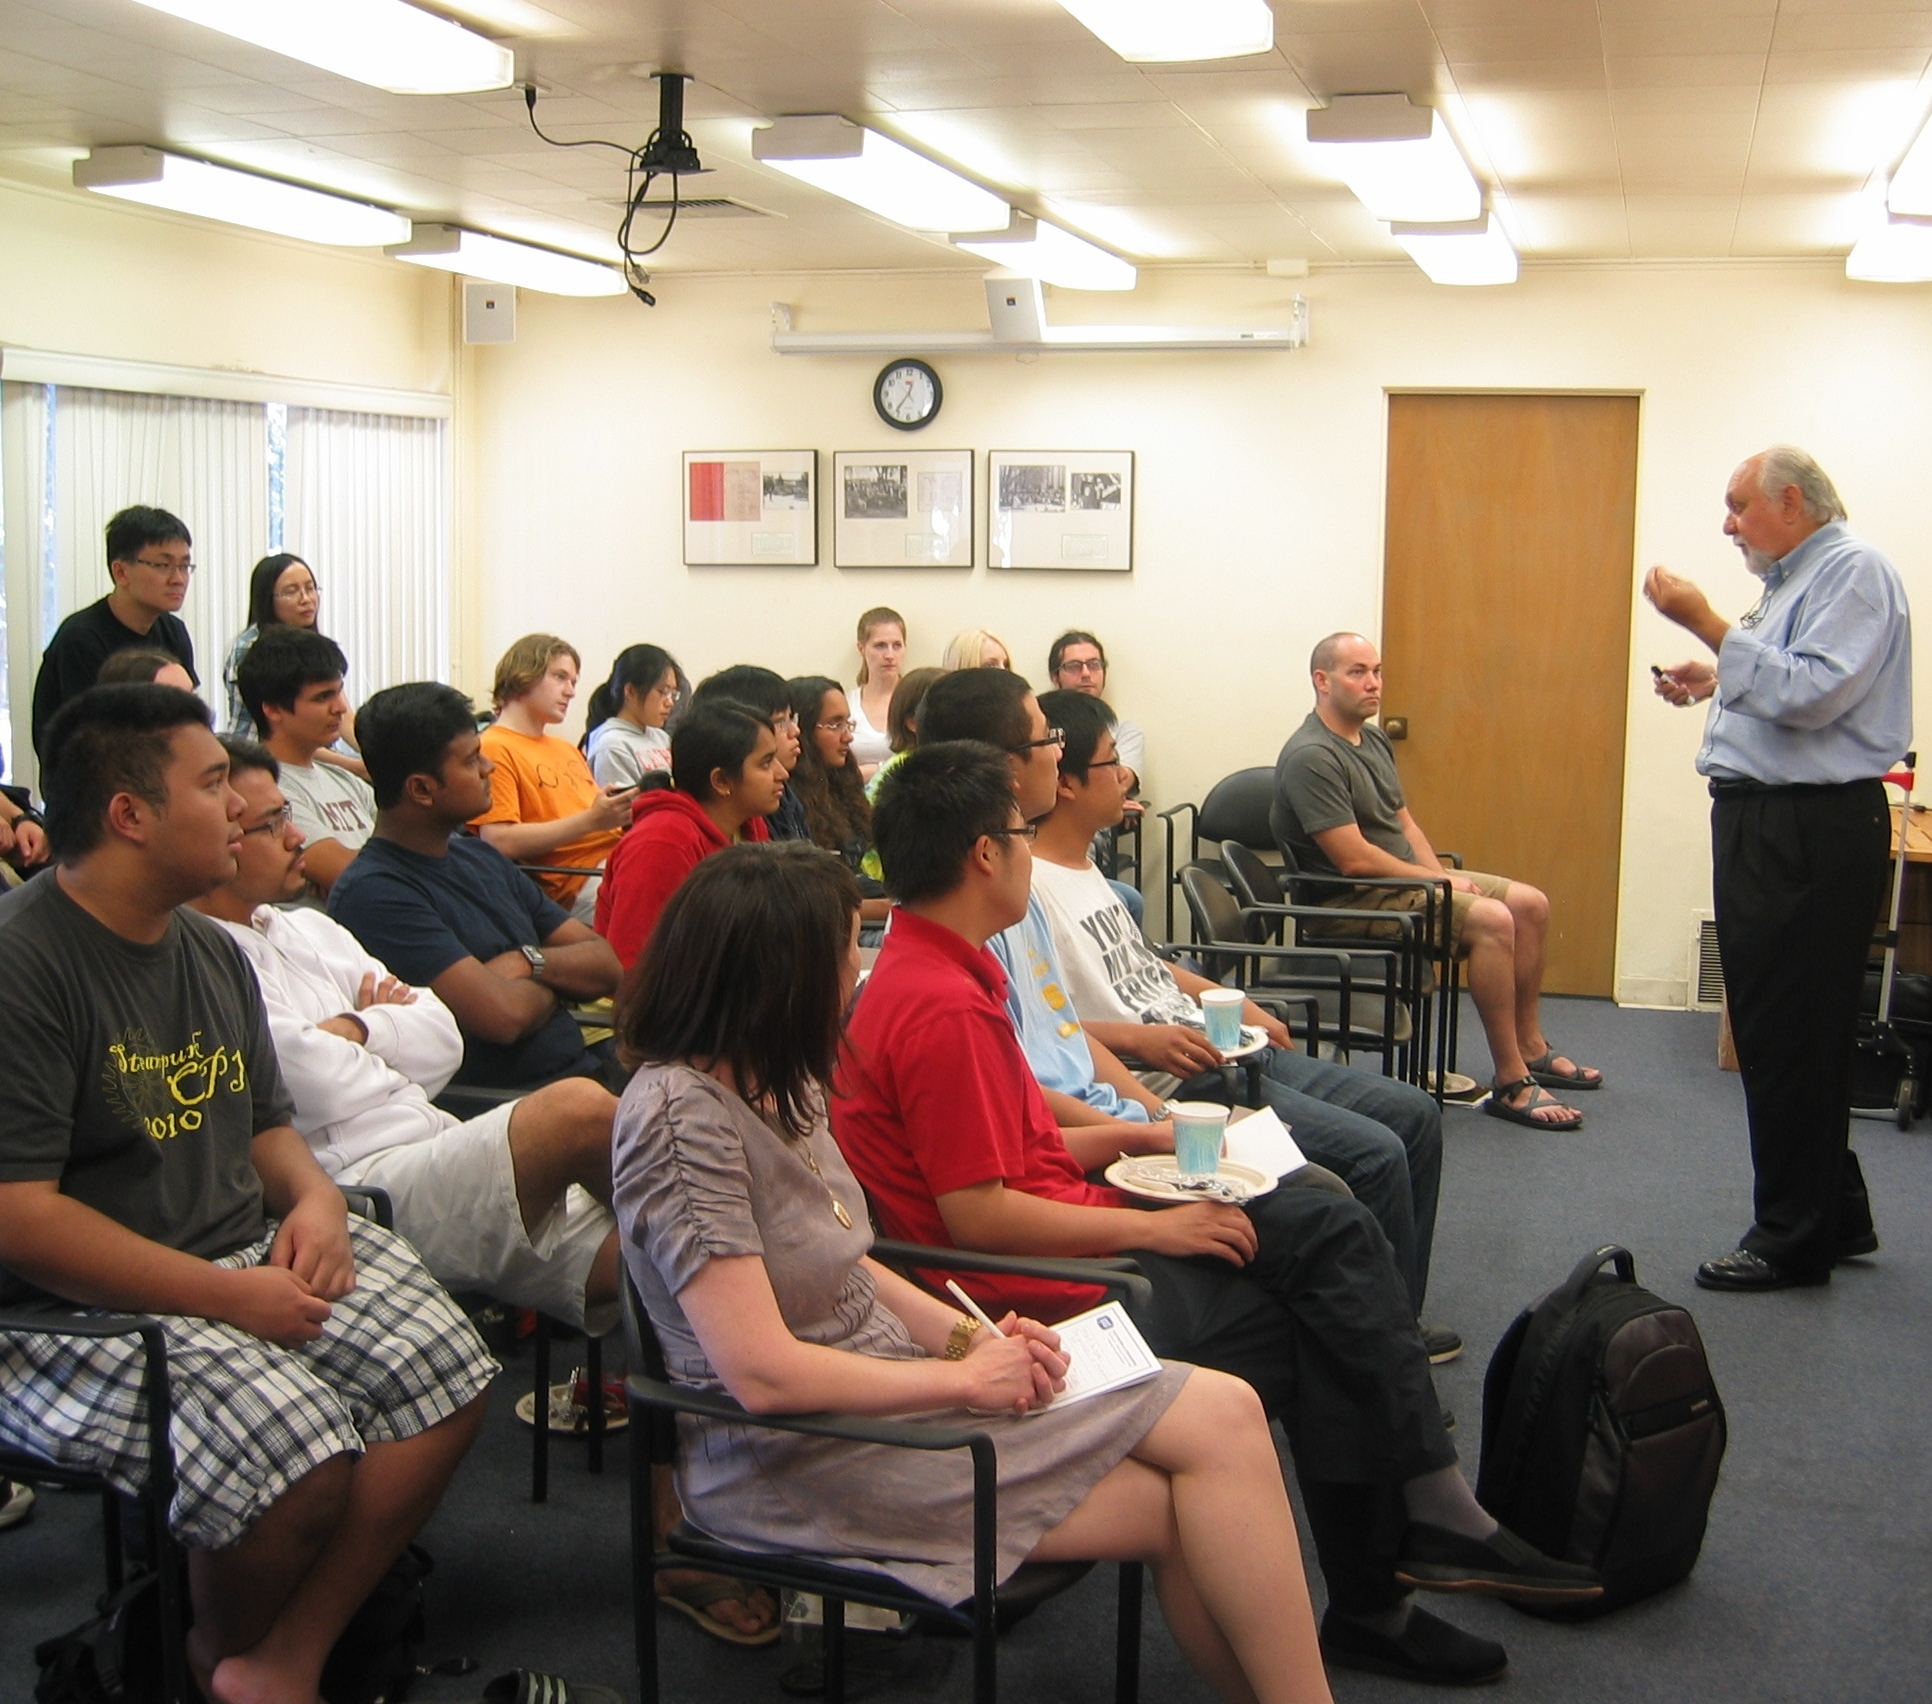 A lecture at Caltech on delivering an effective presentation.